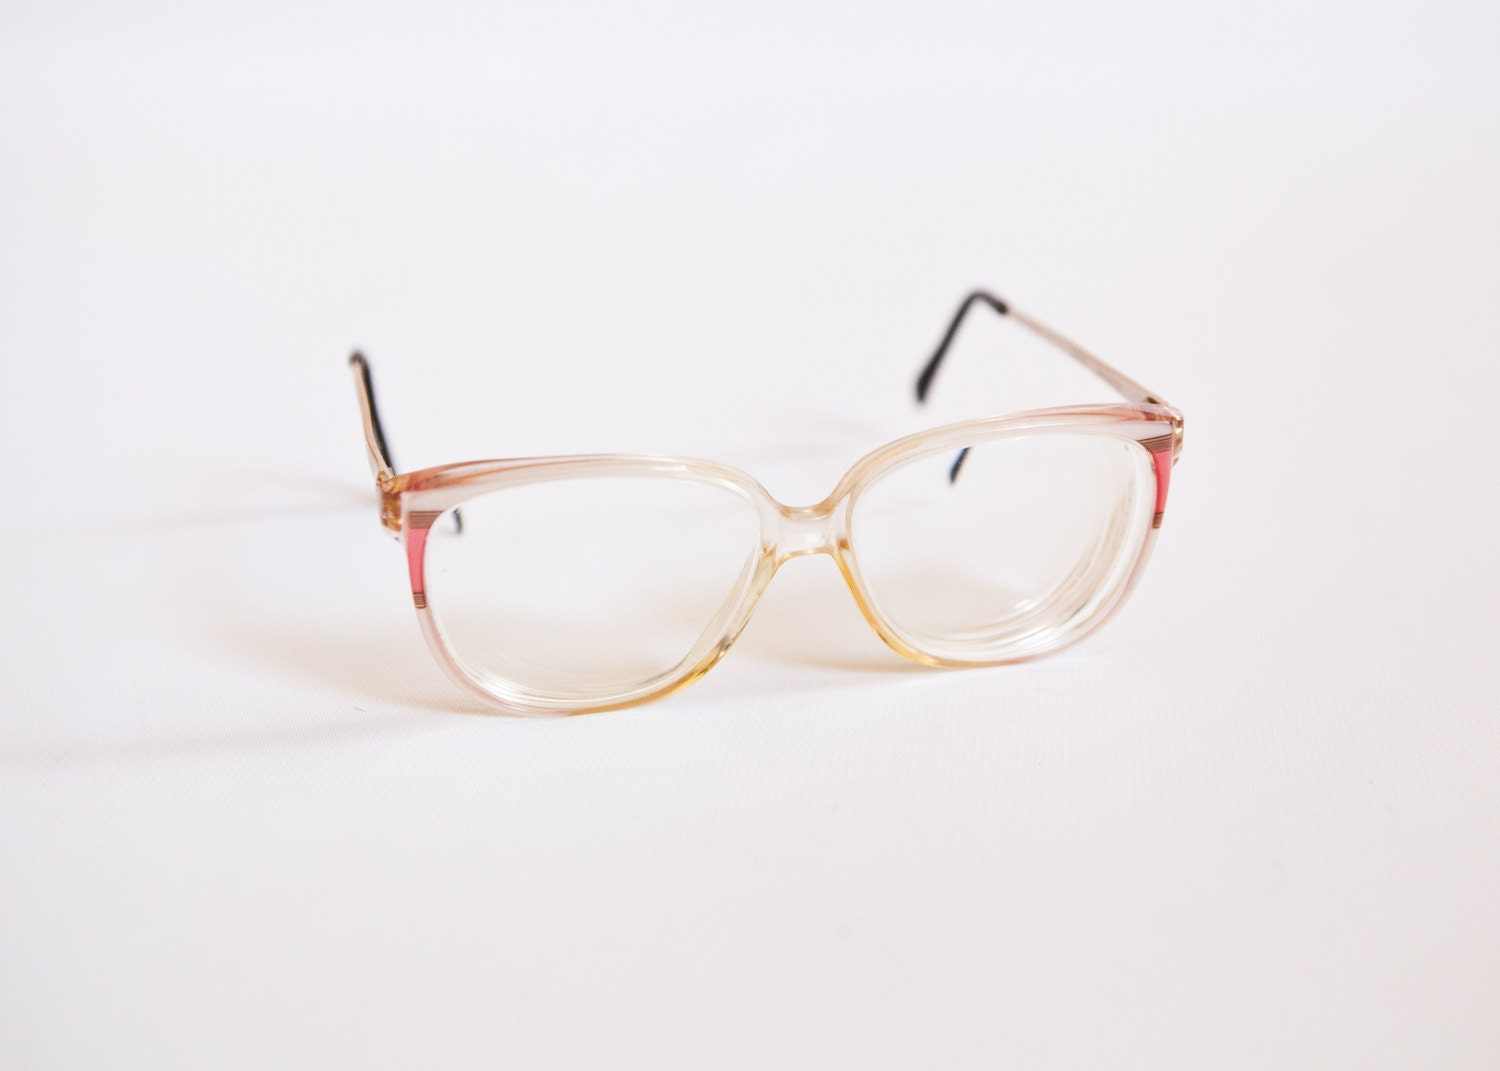 vintage nordic germany clear plastic eyeglass frames with pink